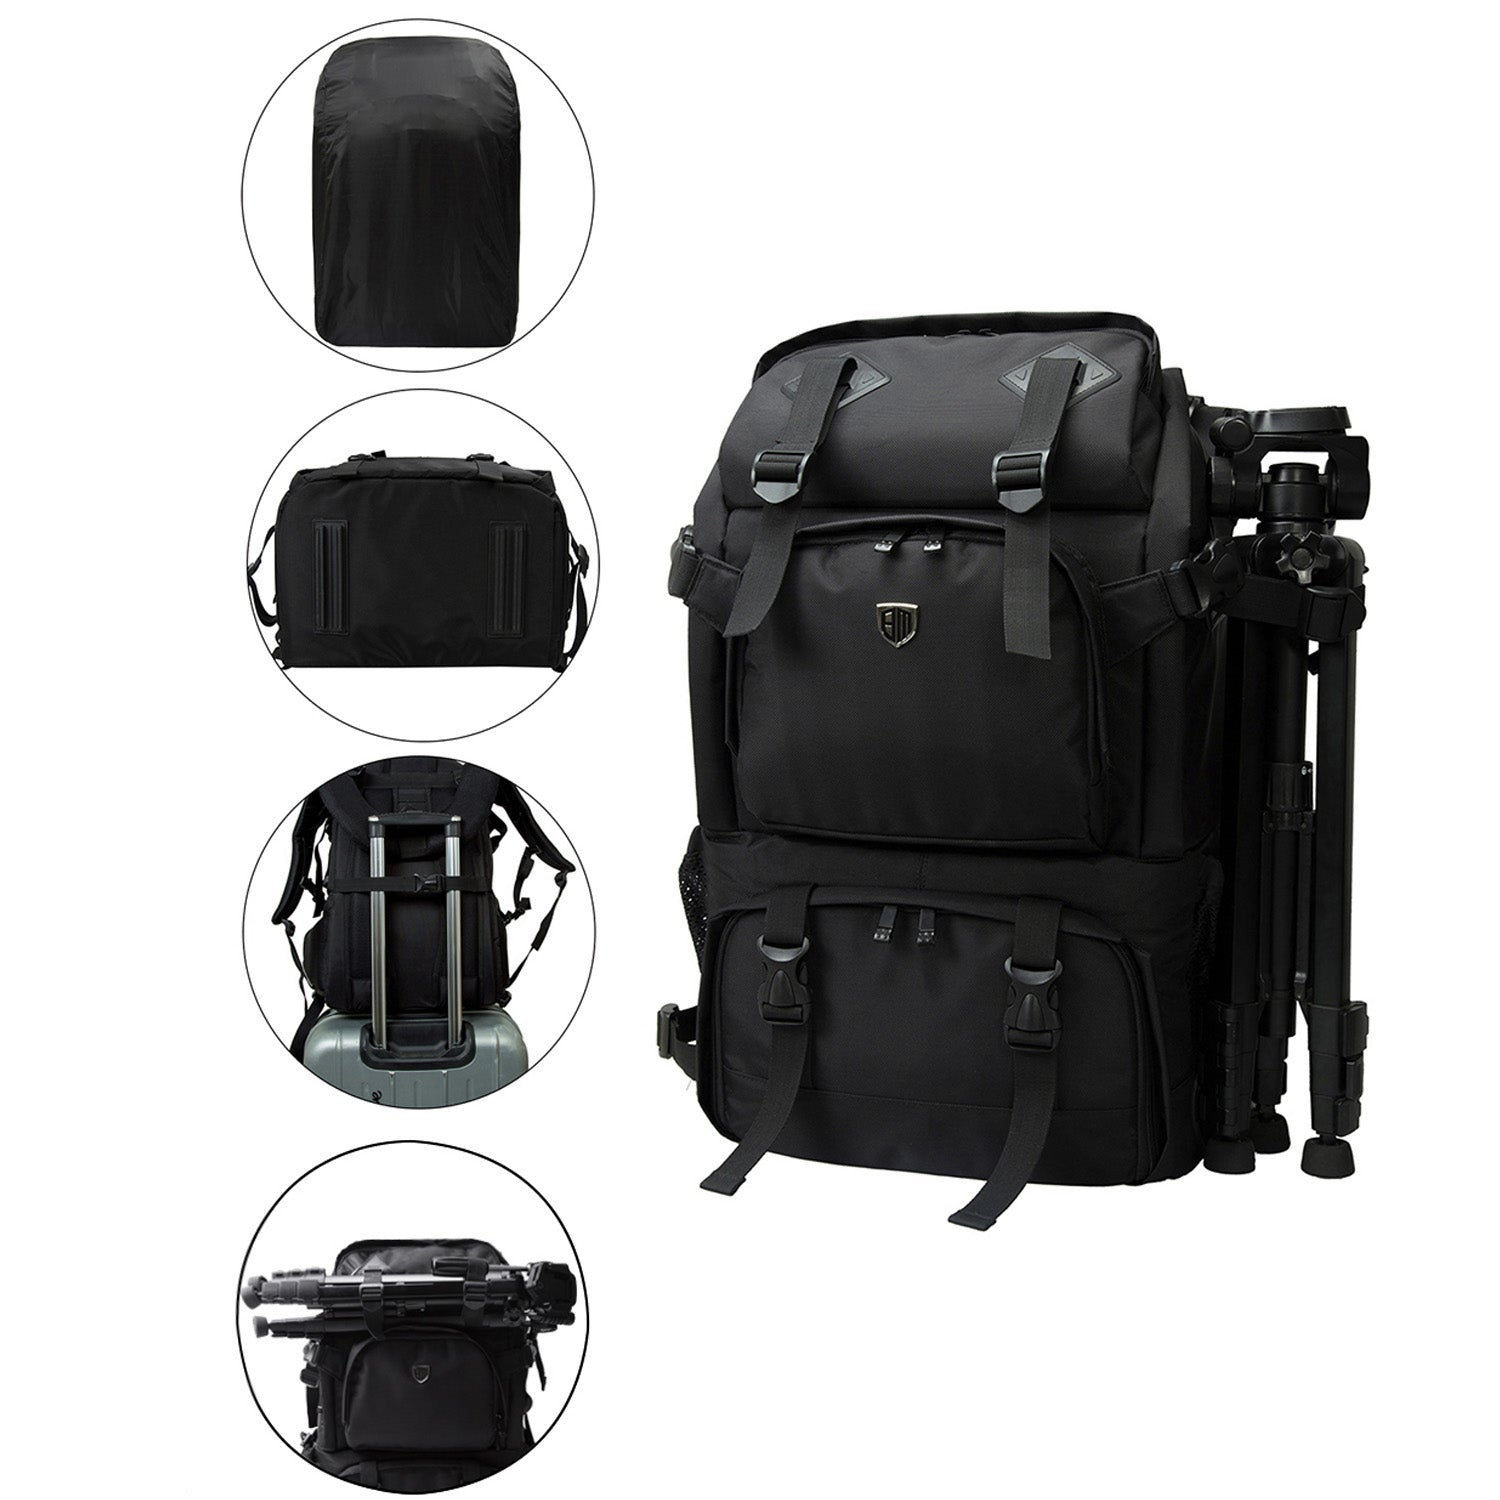 99b7a7978103 Anti-theft Professional Gear Backpack for SLR DSLR Cameras   15